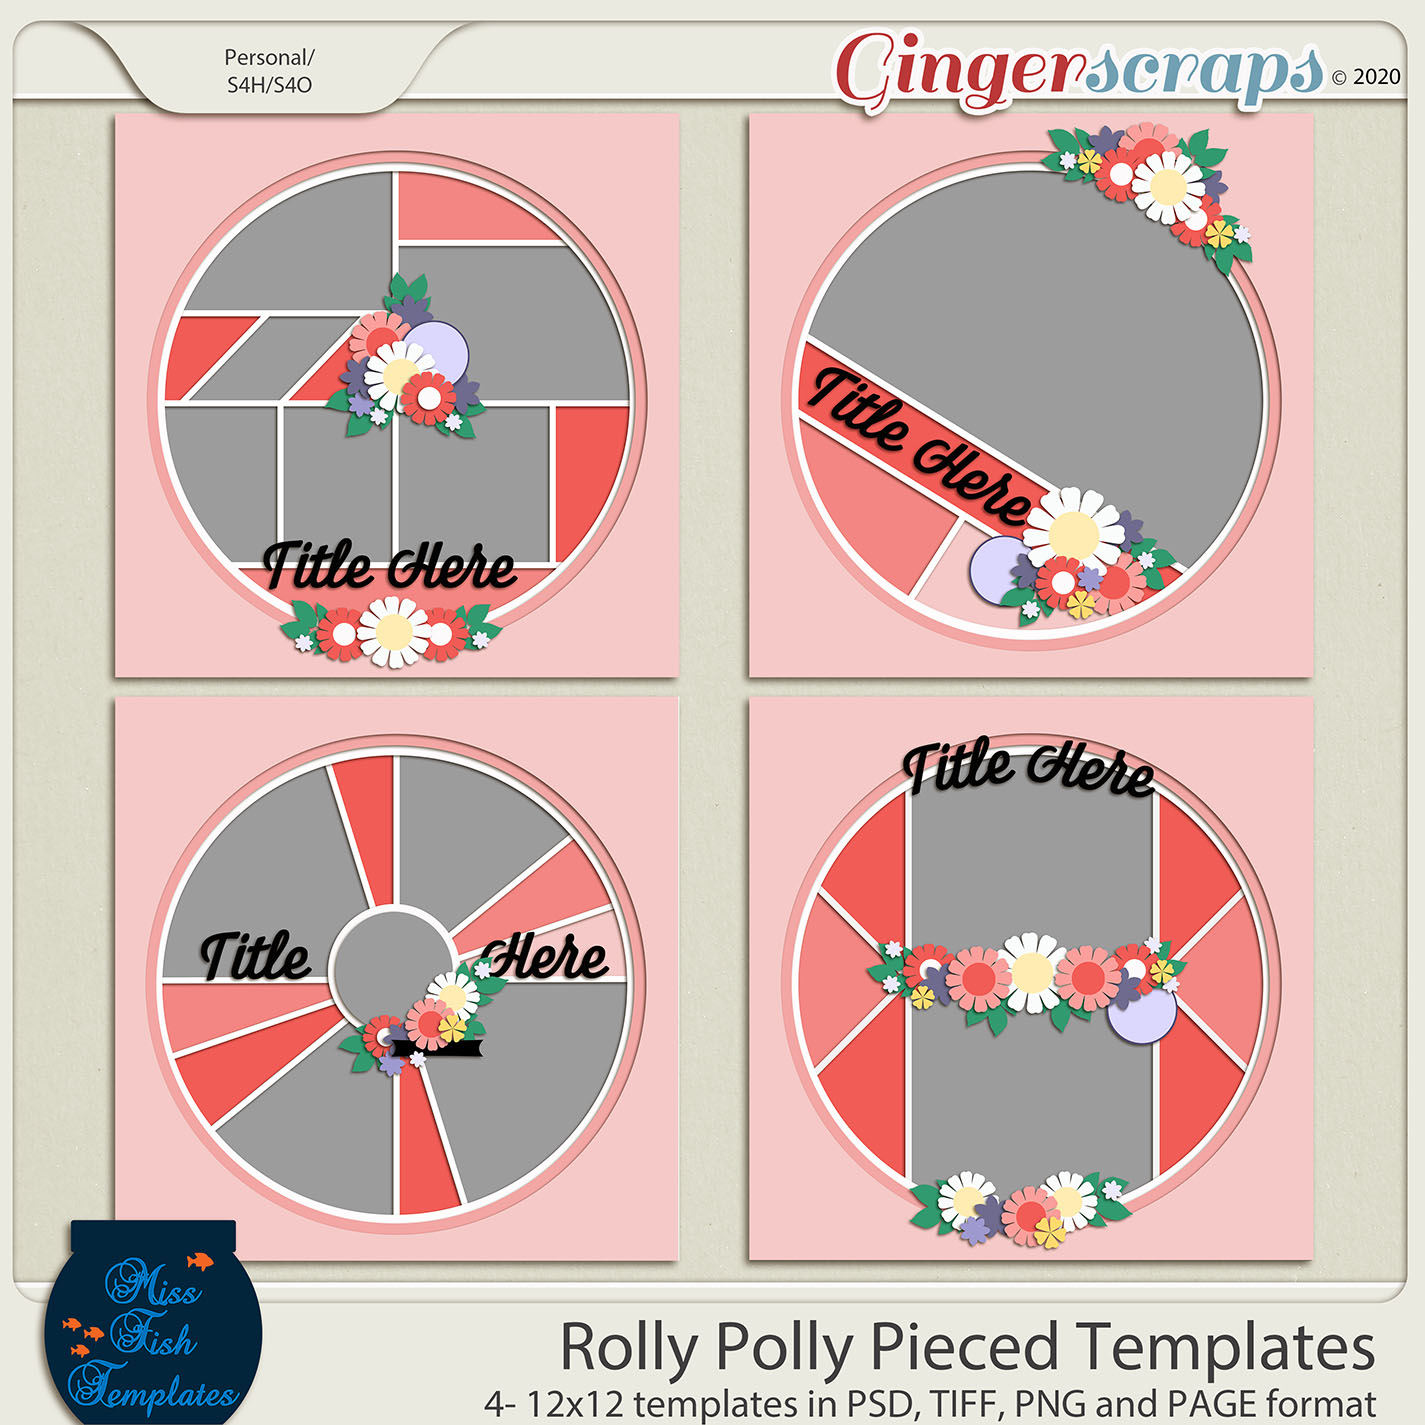 Rolly Polly Pieced Templates by Miss Fish